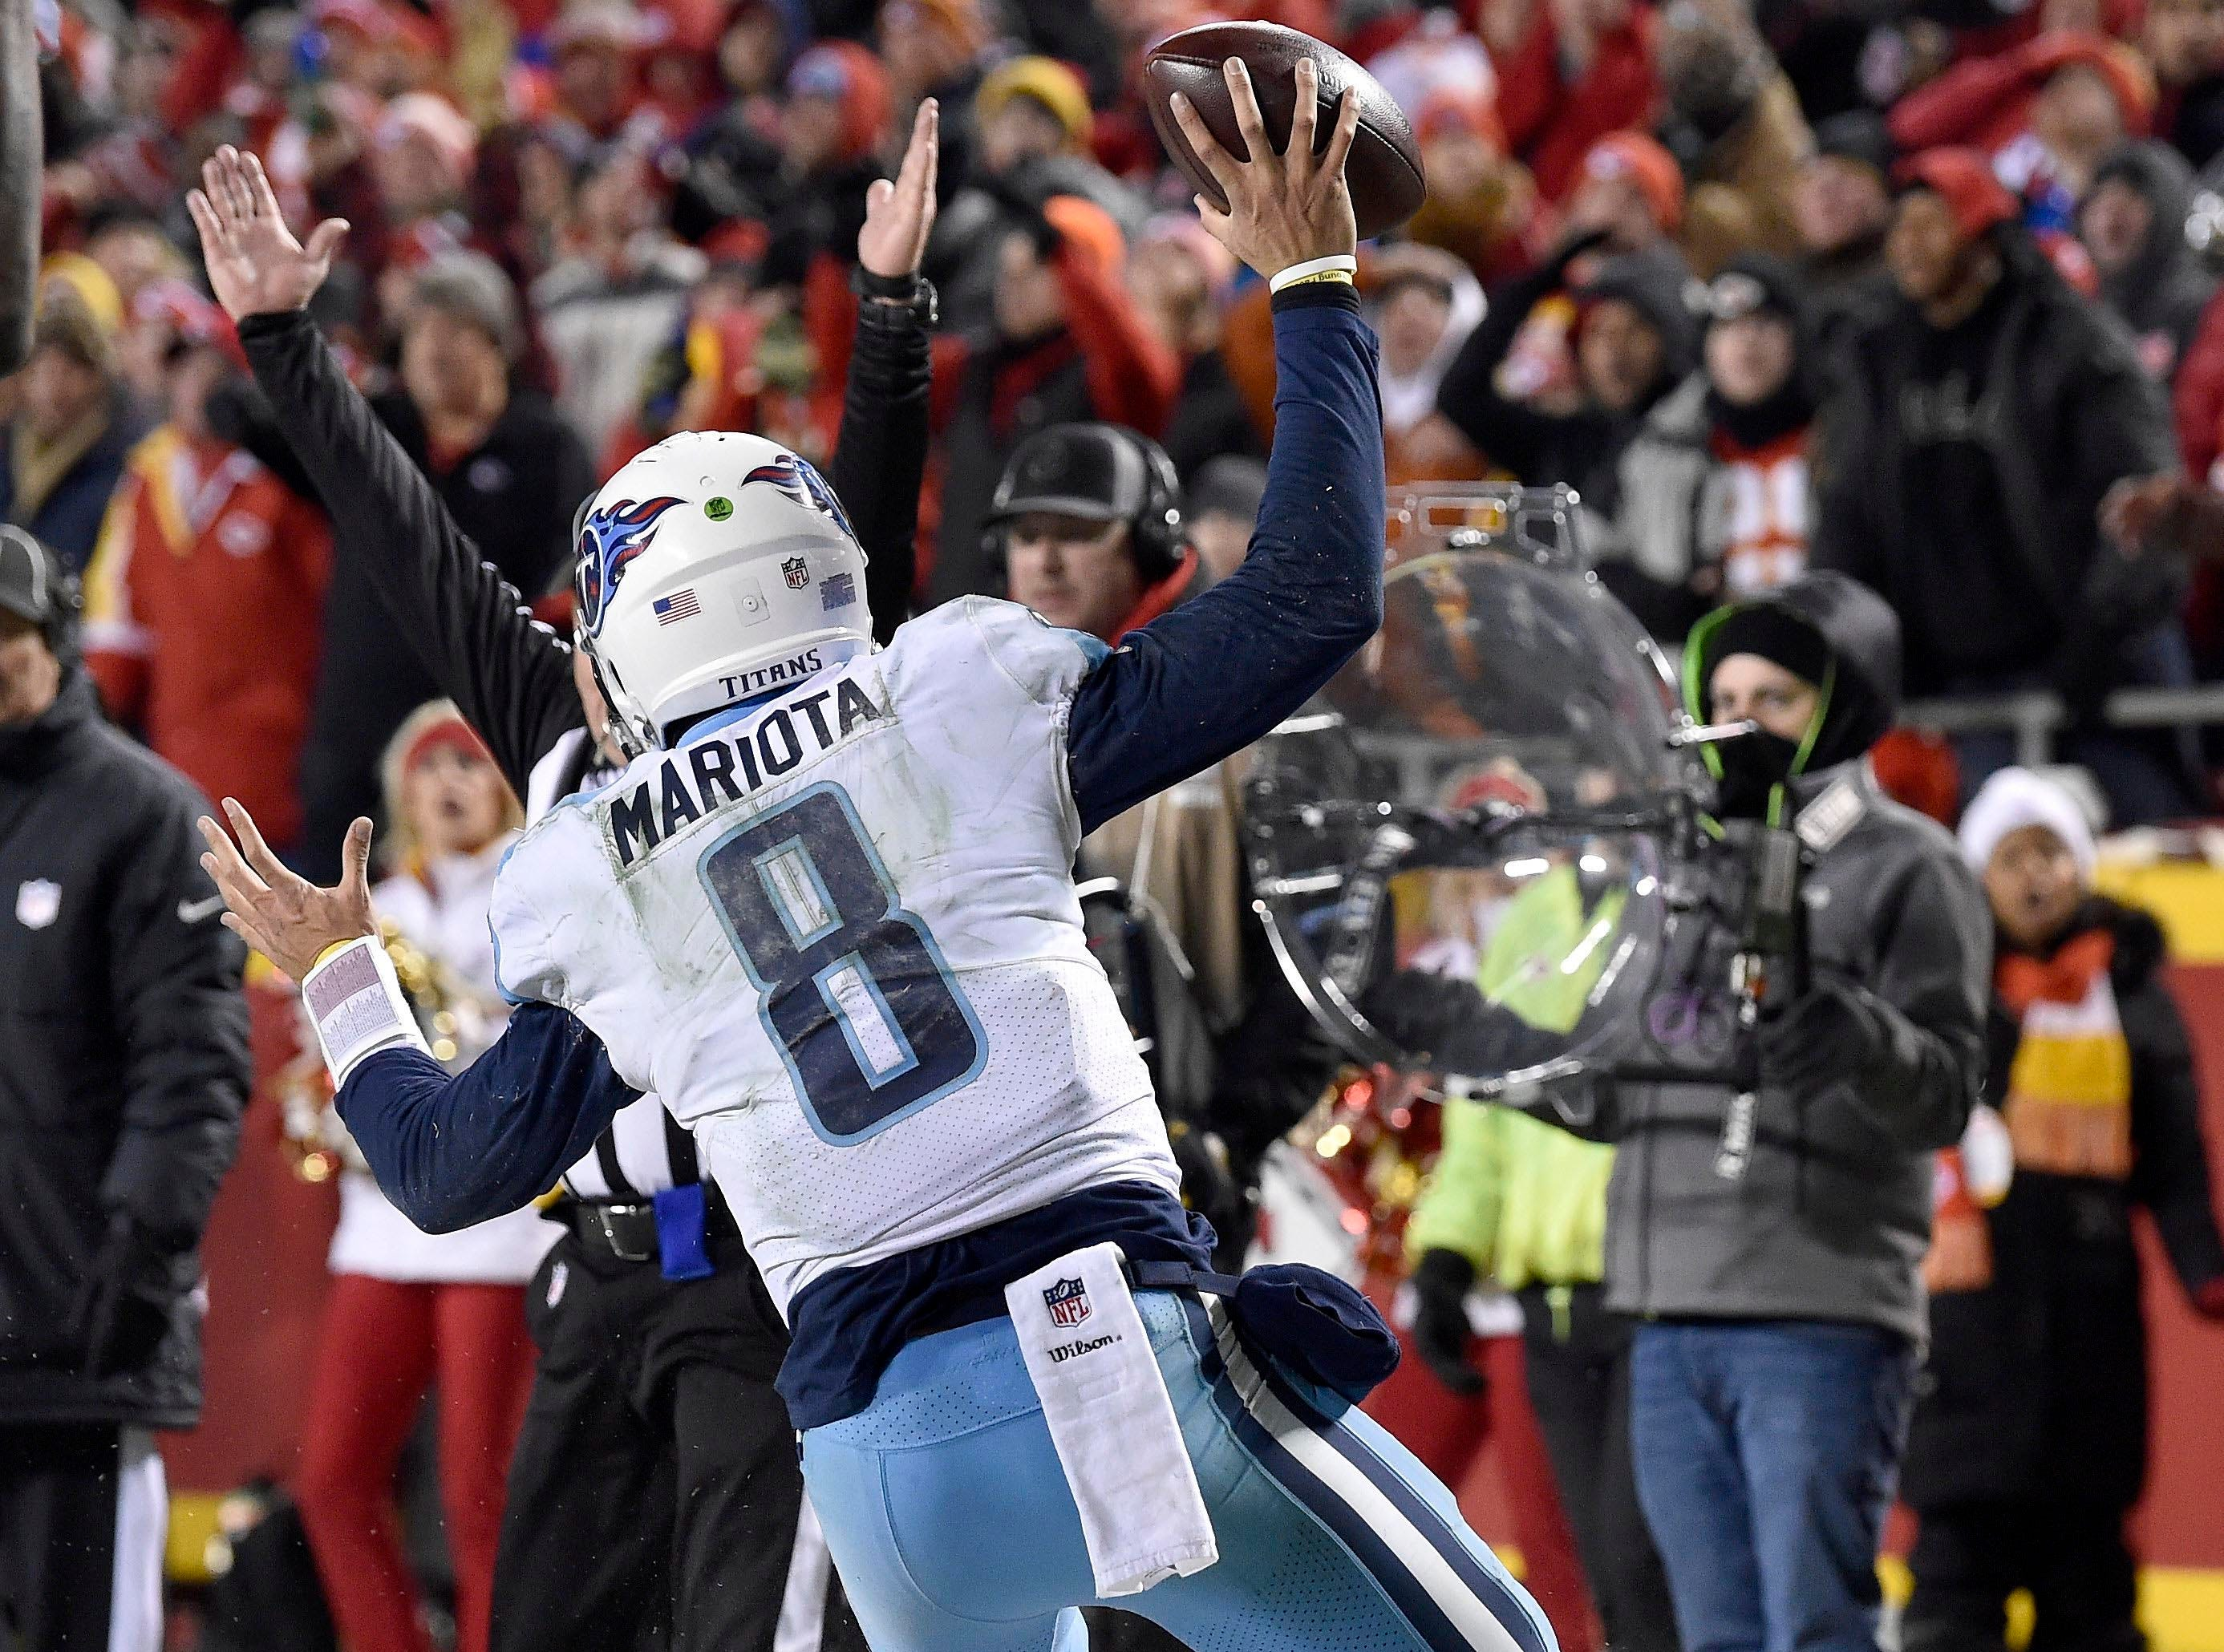 Jan. 6: Tennessee Titans quarterback Marcus Mariota celebrates after scoring a miraculous touchdown in the third quarter of the Titans' comeback win against the Kansas City Chiefs in the AFC's wild-card round at Arrowhead Stadium.